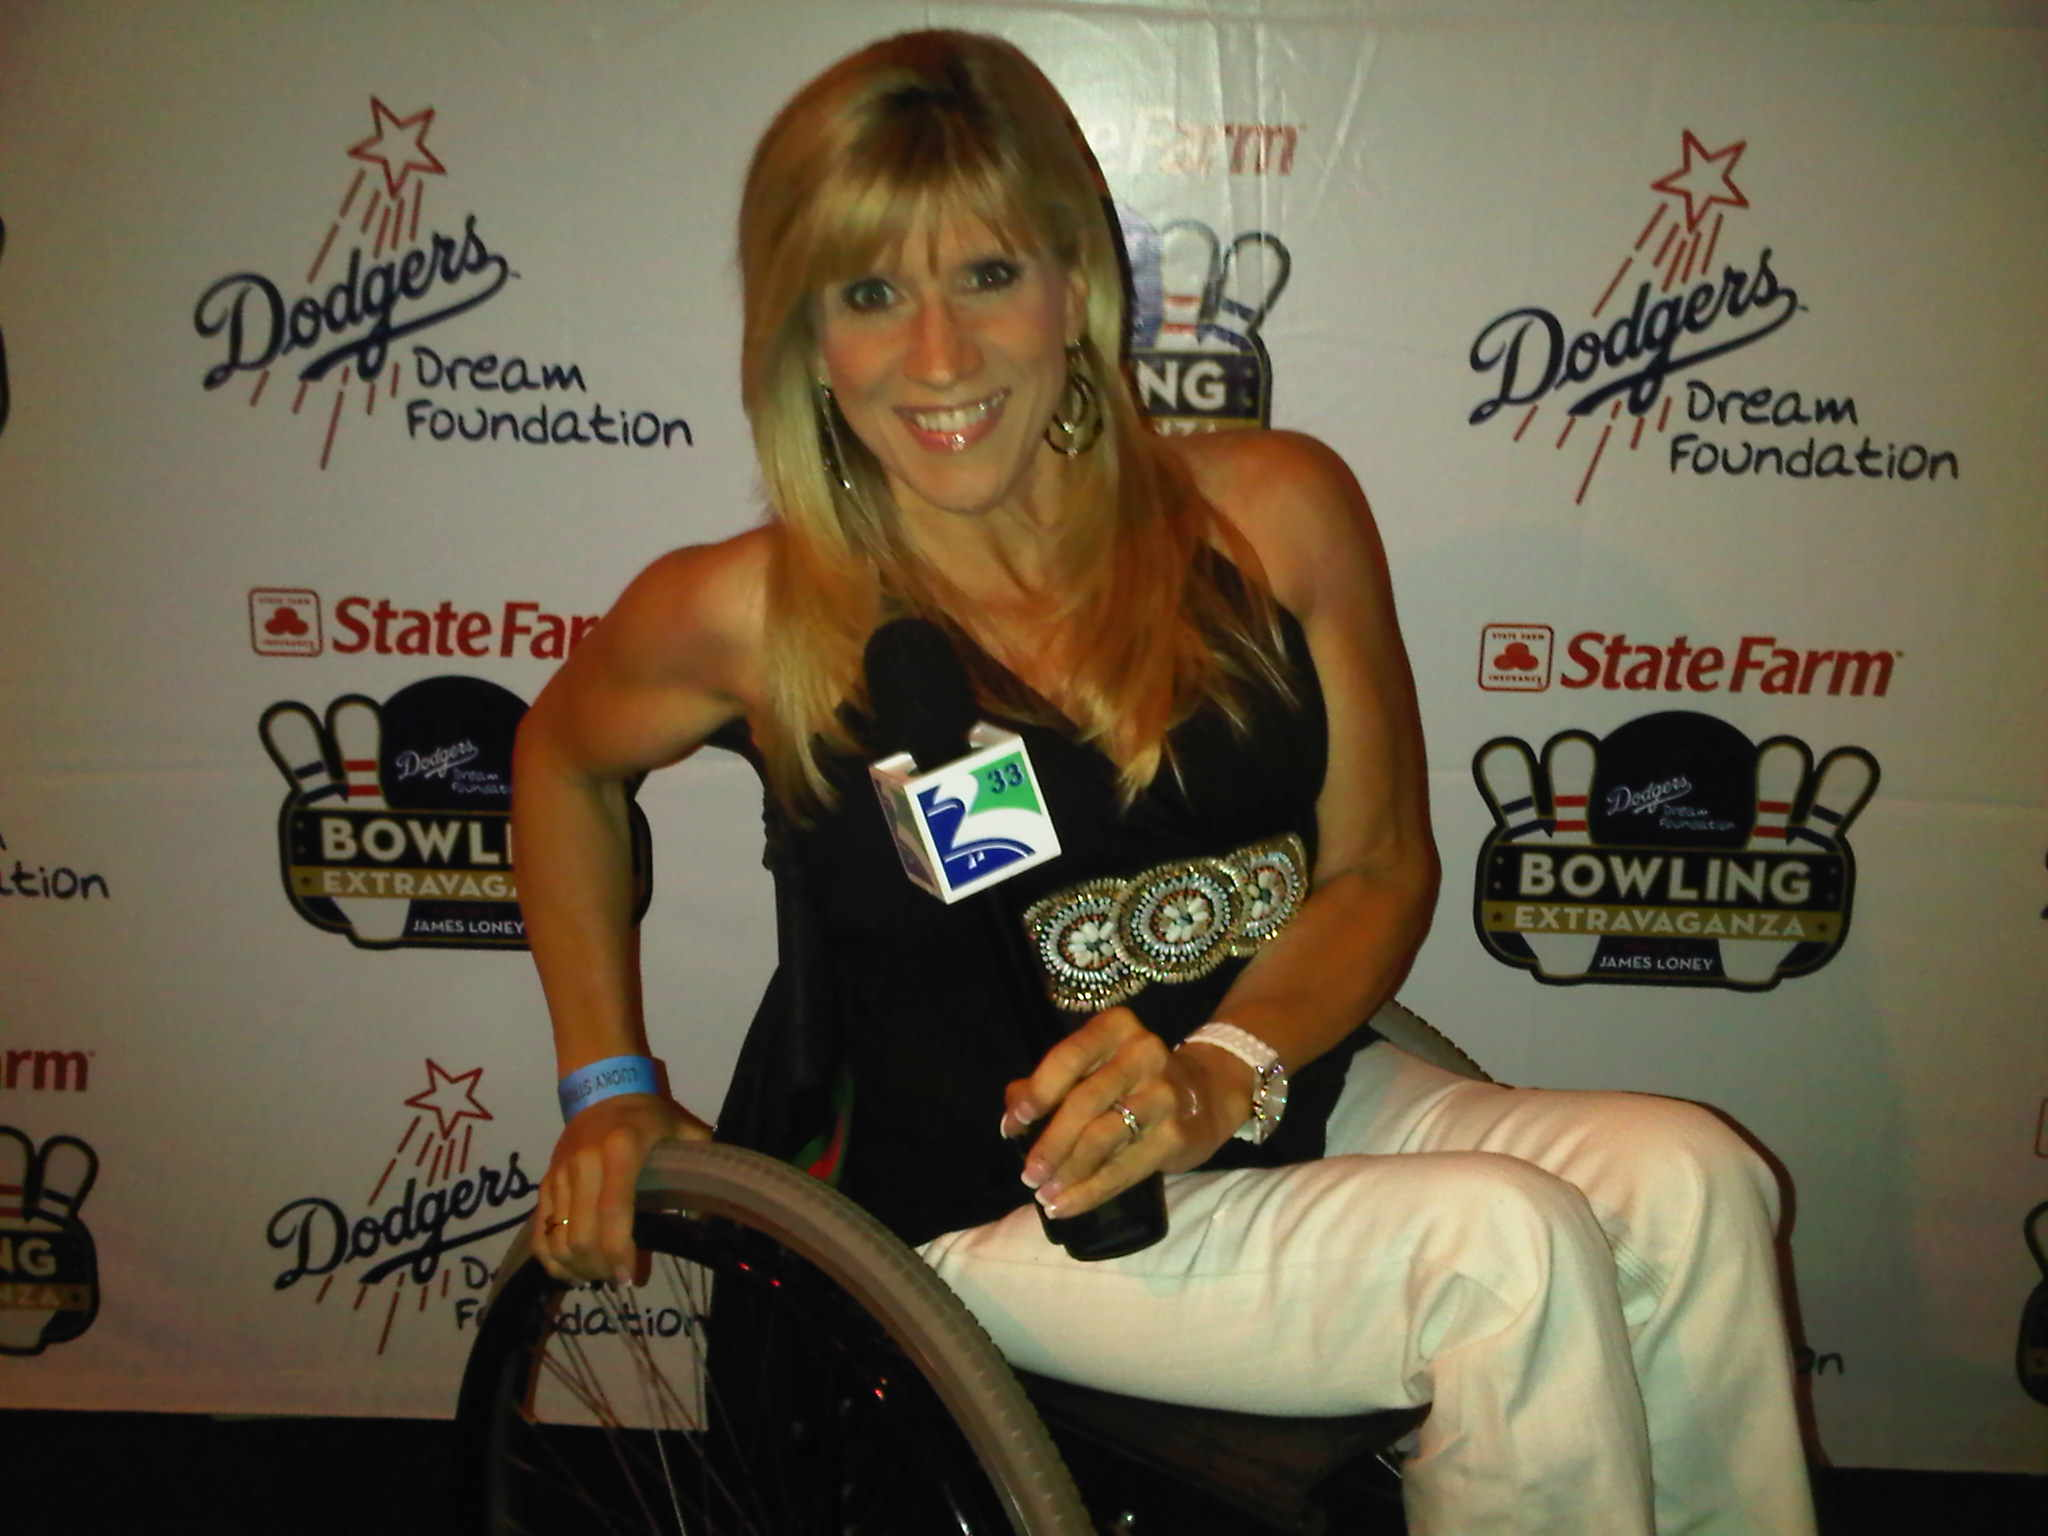 Maria at Dodgers Bowling Event